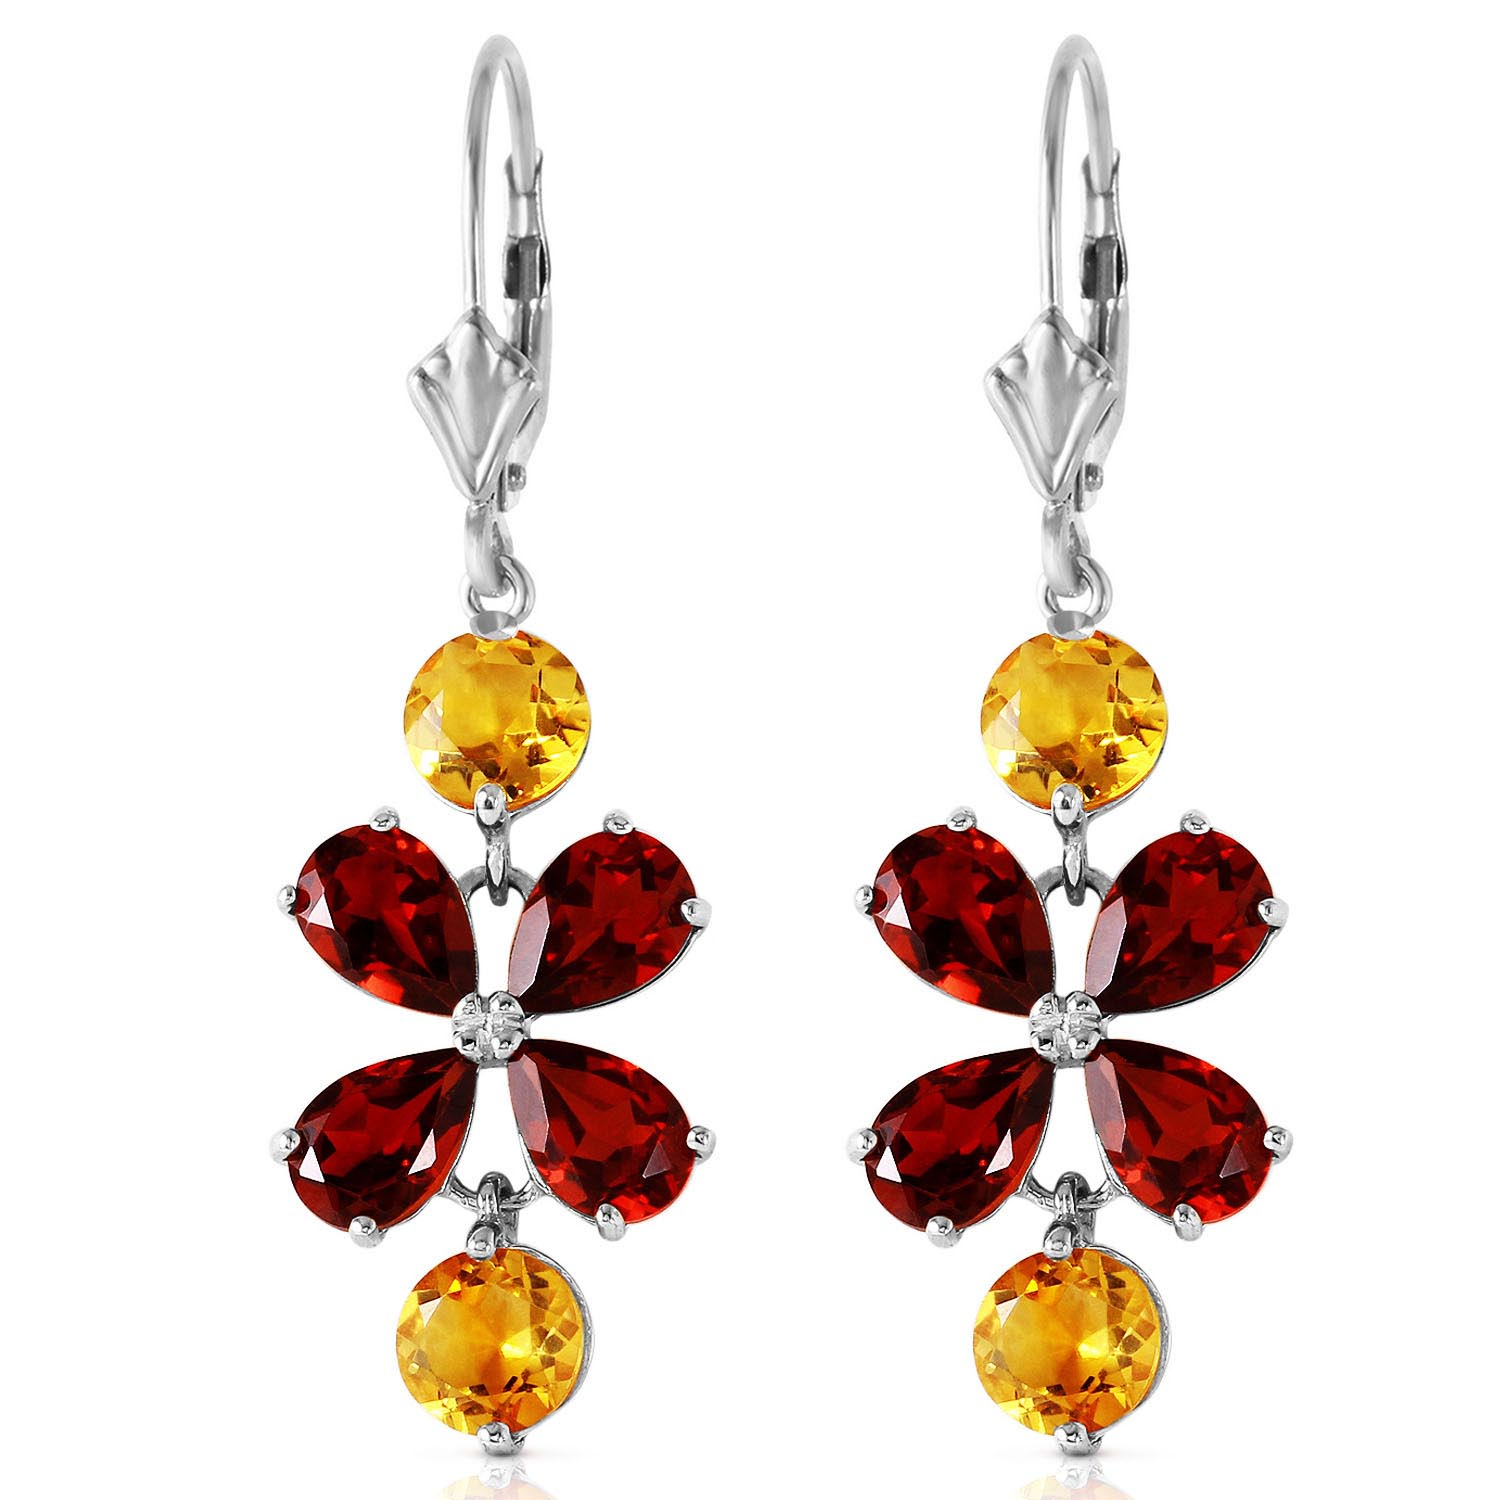 Citrine and Garnet Blossom Drop Earrings 5.32ctw in 9ct White Gold